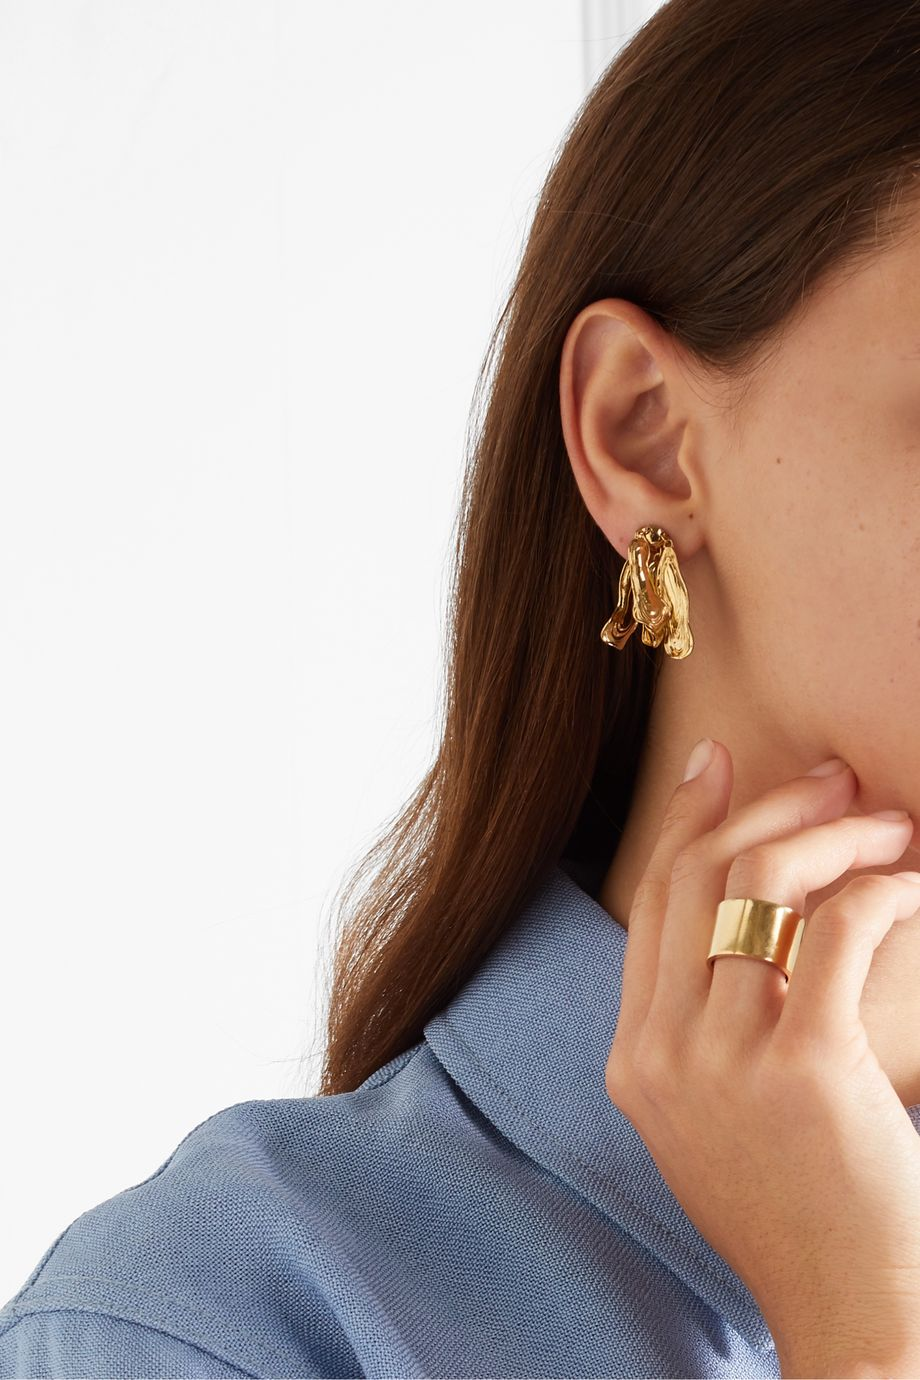 Leigh Miller + NET SUSTAIN gold-plated earrings